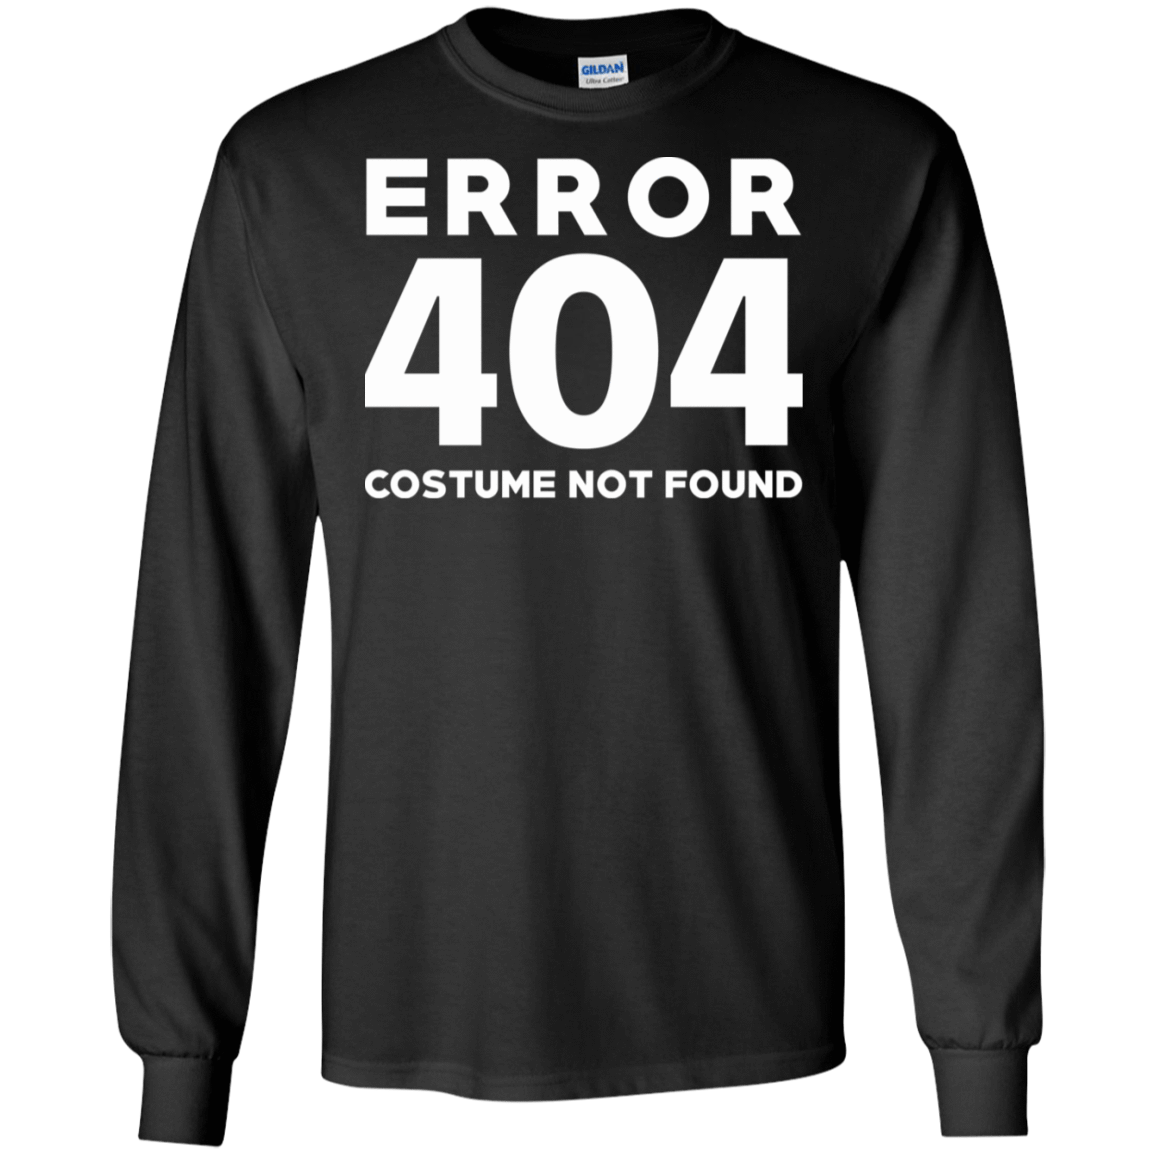 Error 404 Costume Not Found 30-186-73513402-333 - Tee Ript